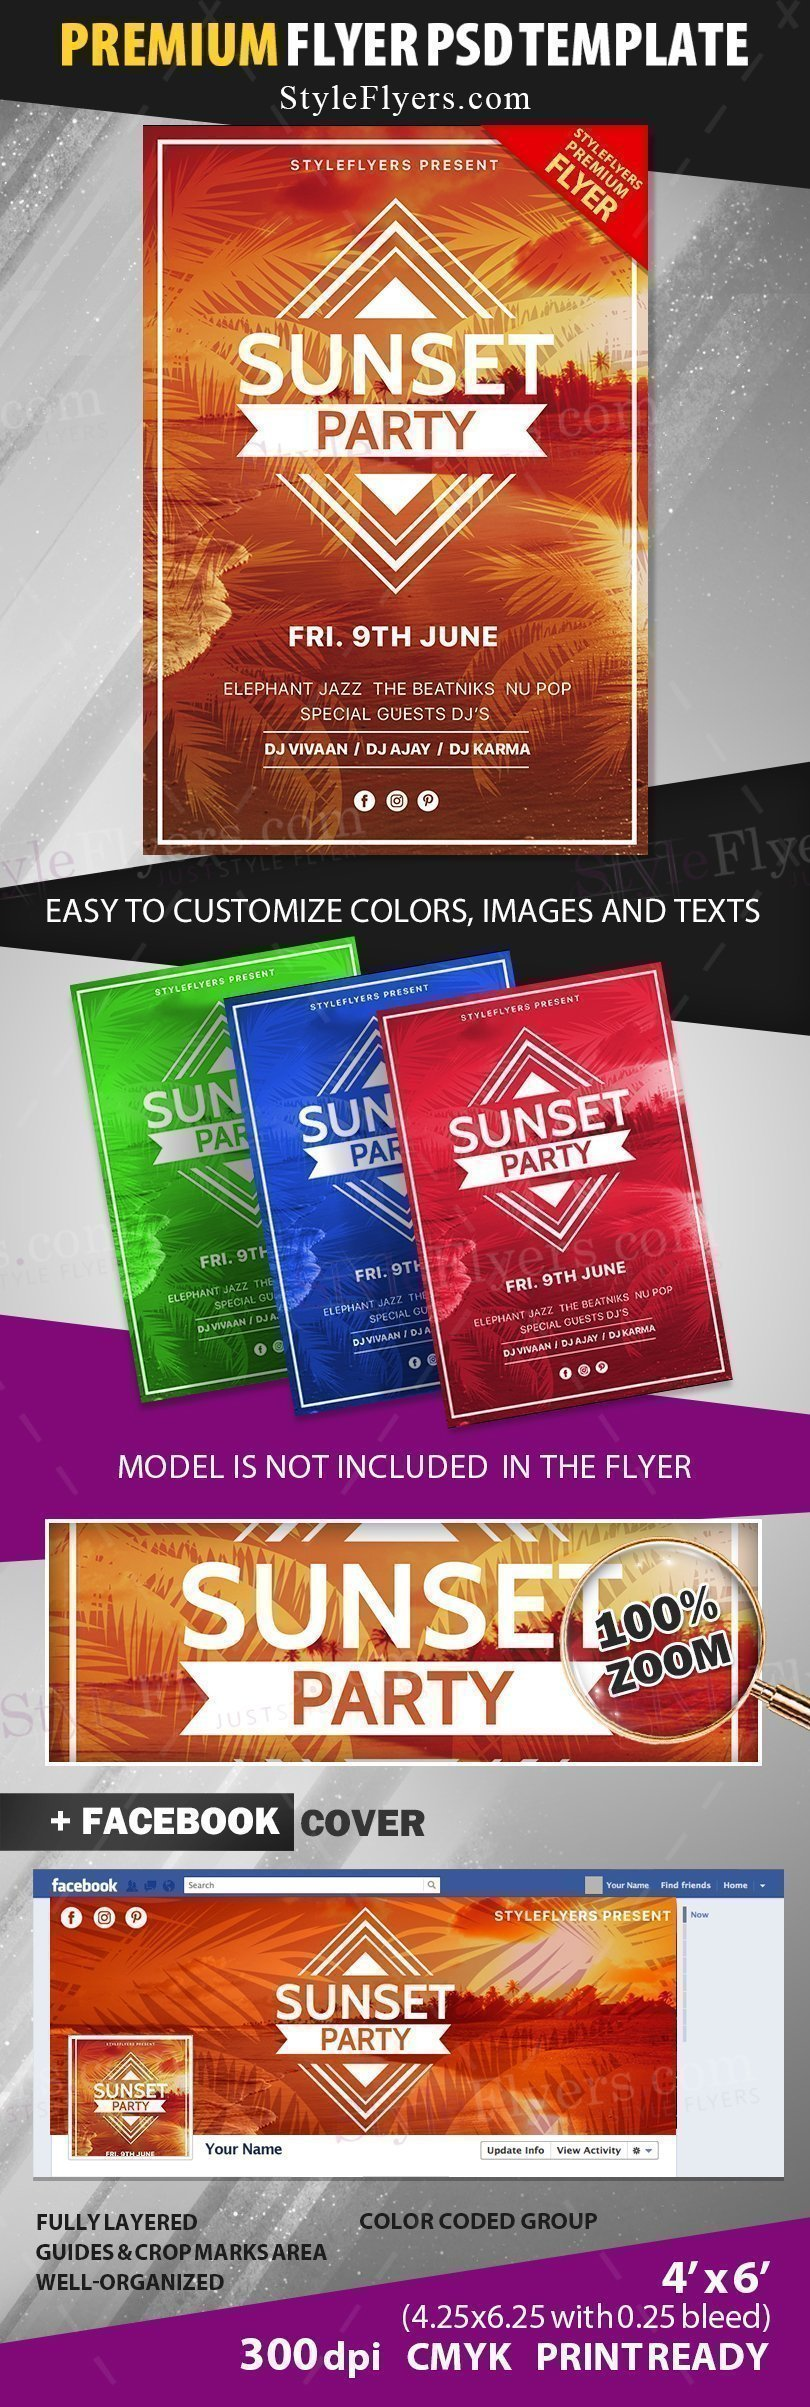 preview_Sunset party_psd_flyer